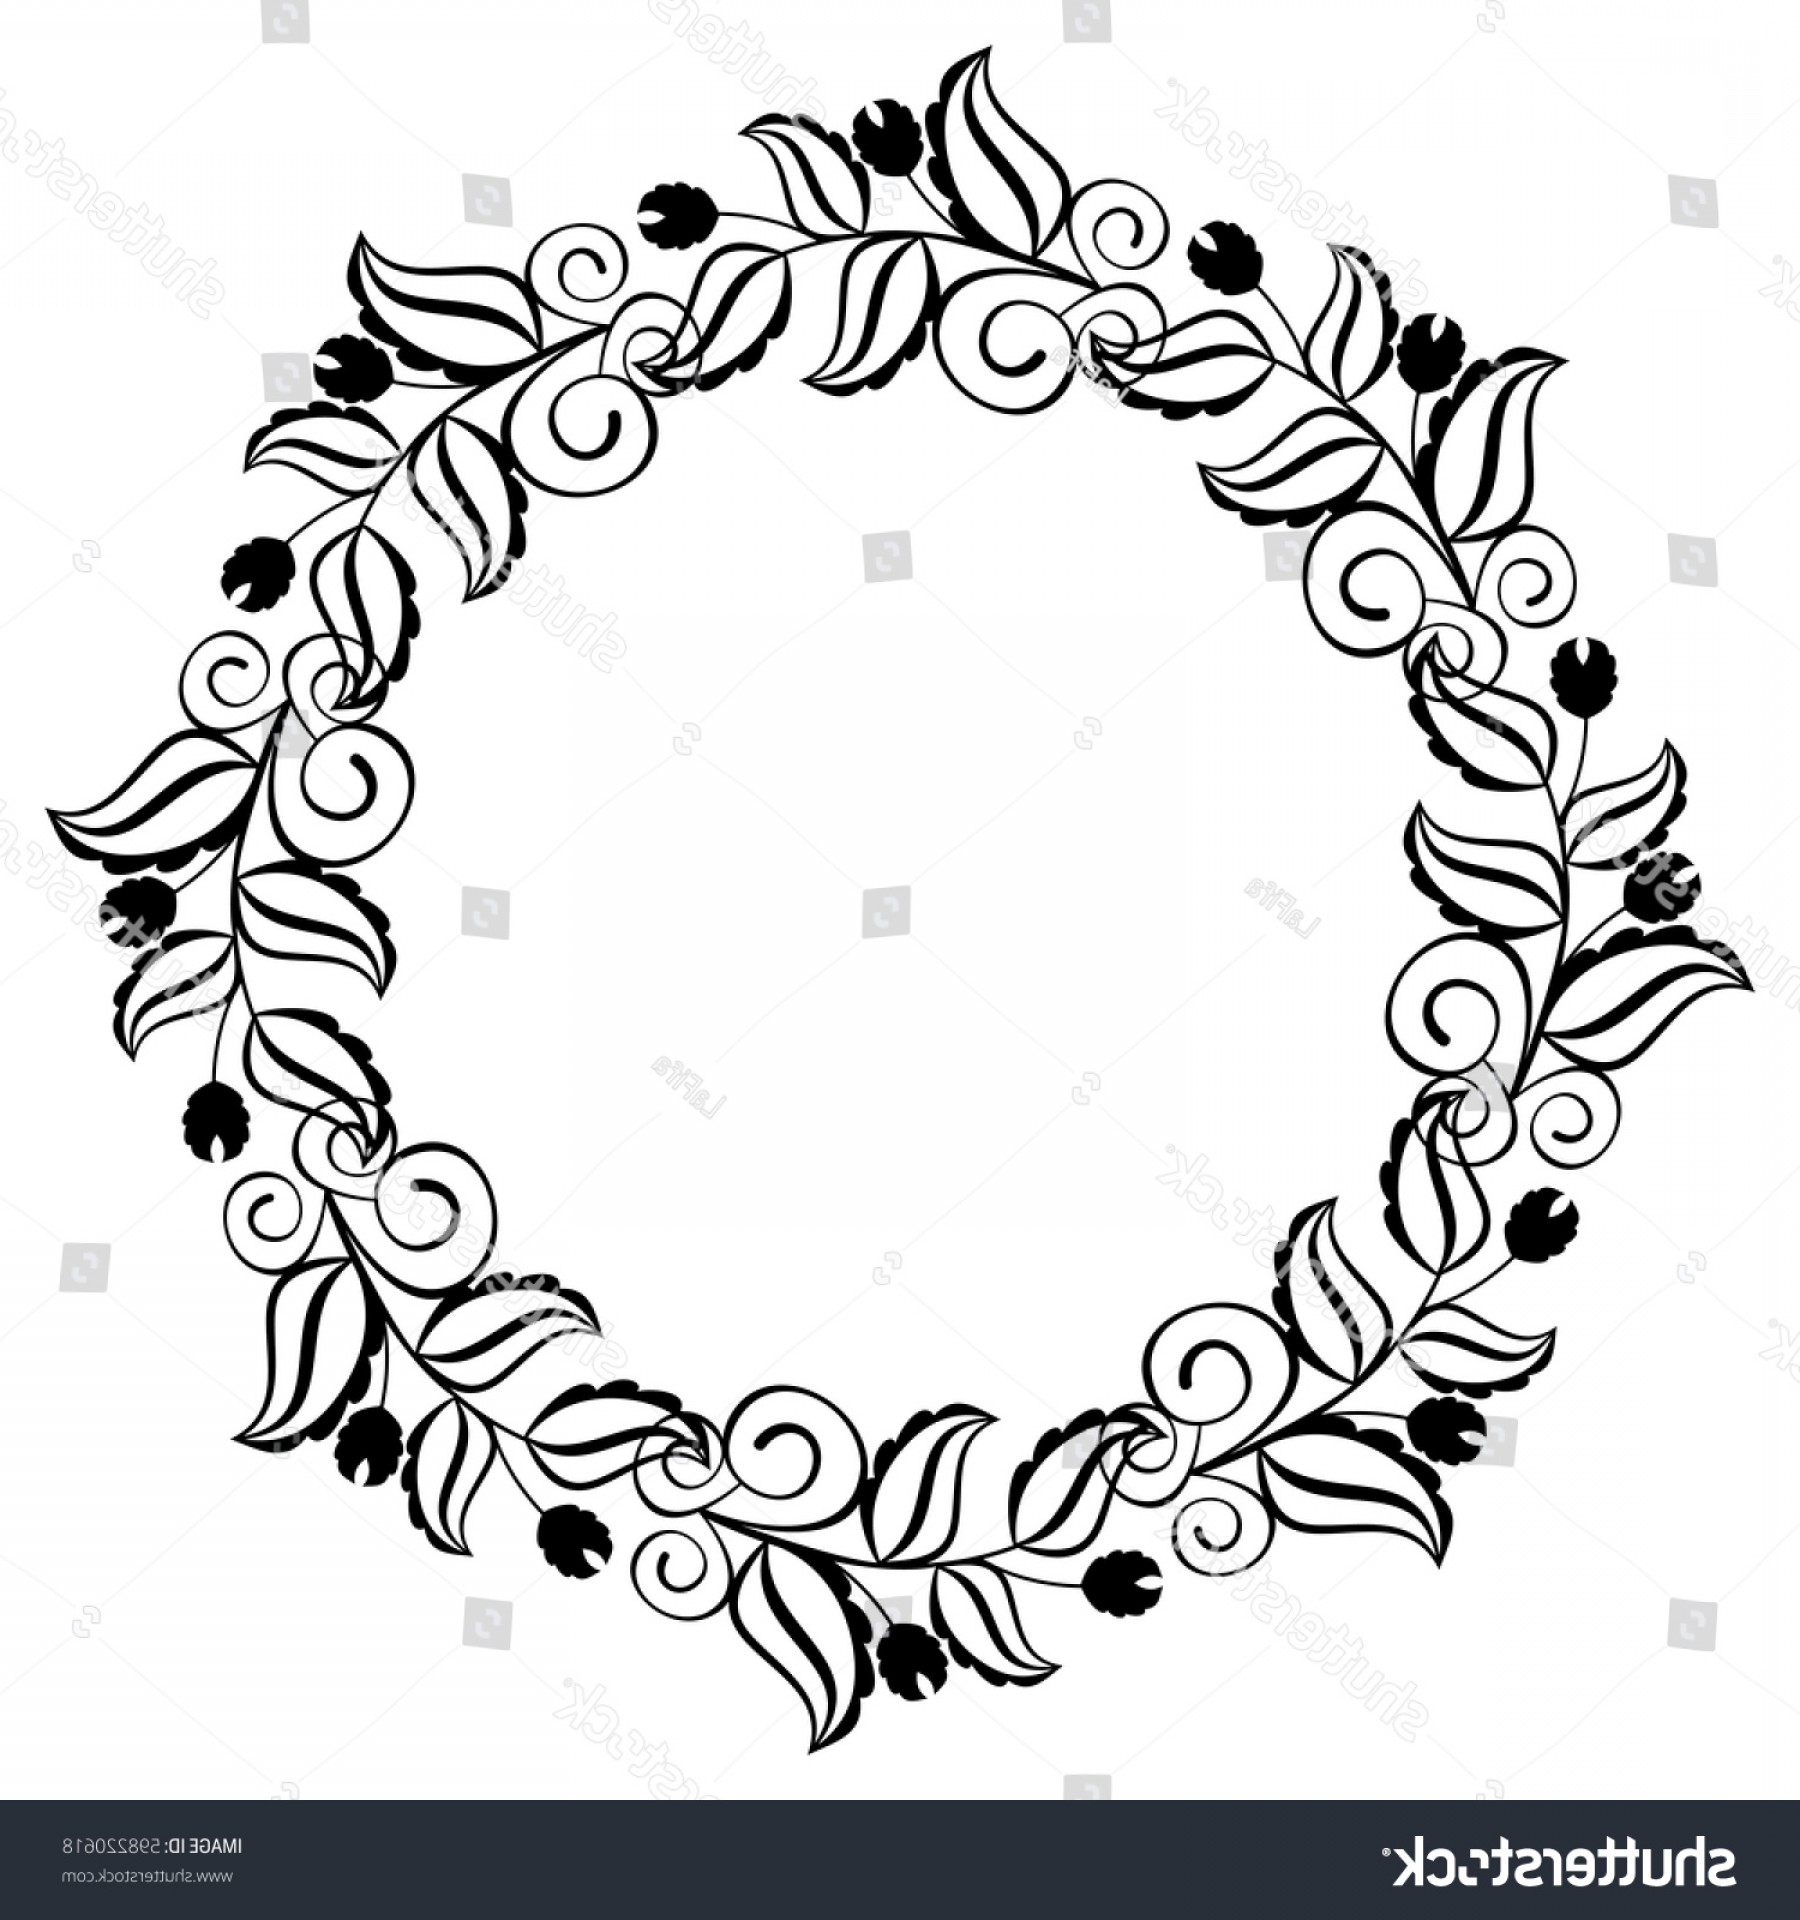 Round Frame Vector Silhouette: Silhouette Round Frame Abstract Black White